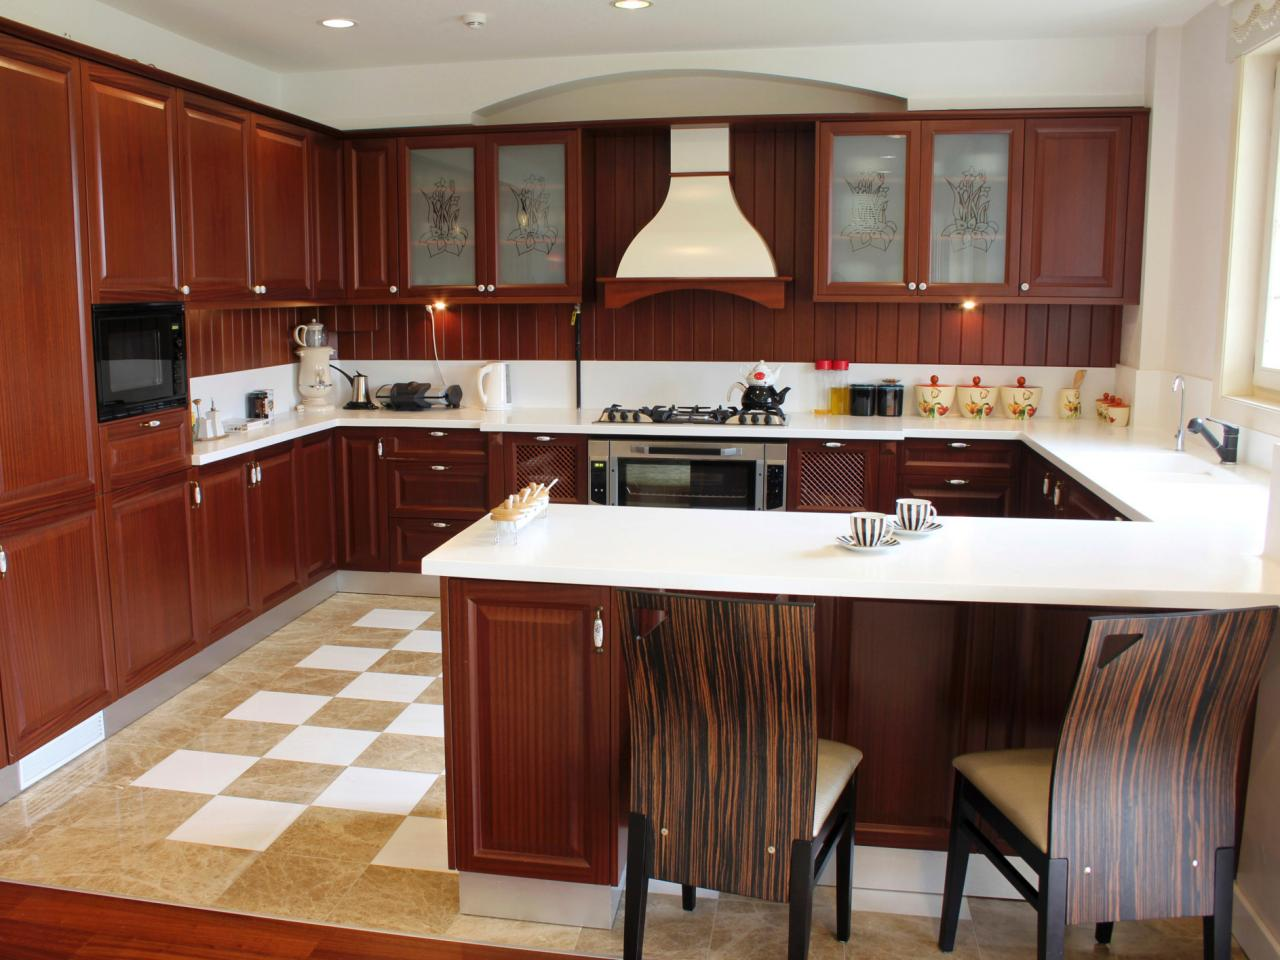 hgtv u shaped kitchen designs photo - 4